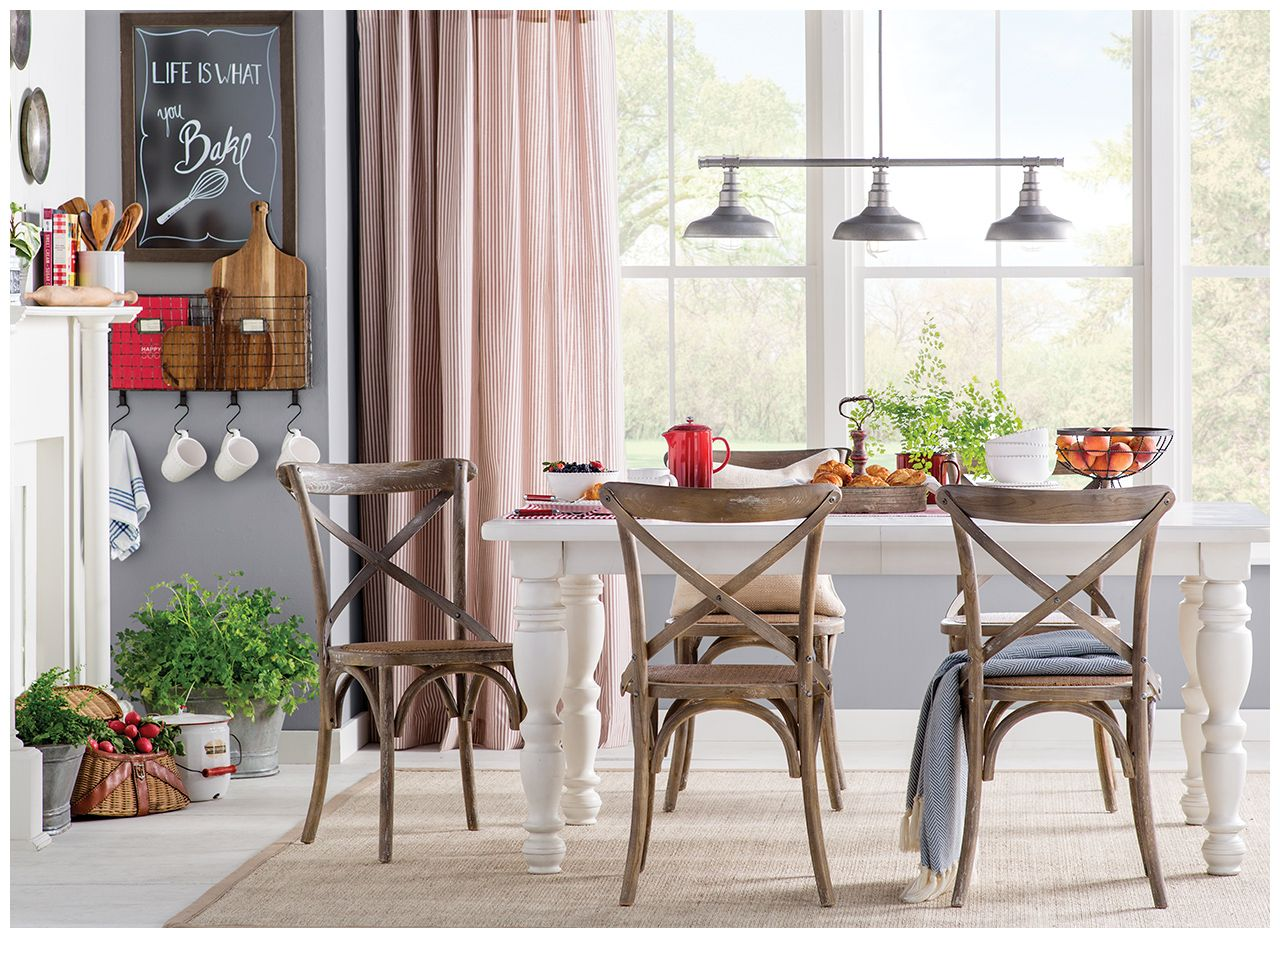 Farmhouse style meets country charm dining area decor interior design also rh pinterest